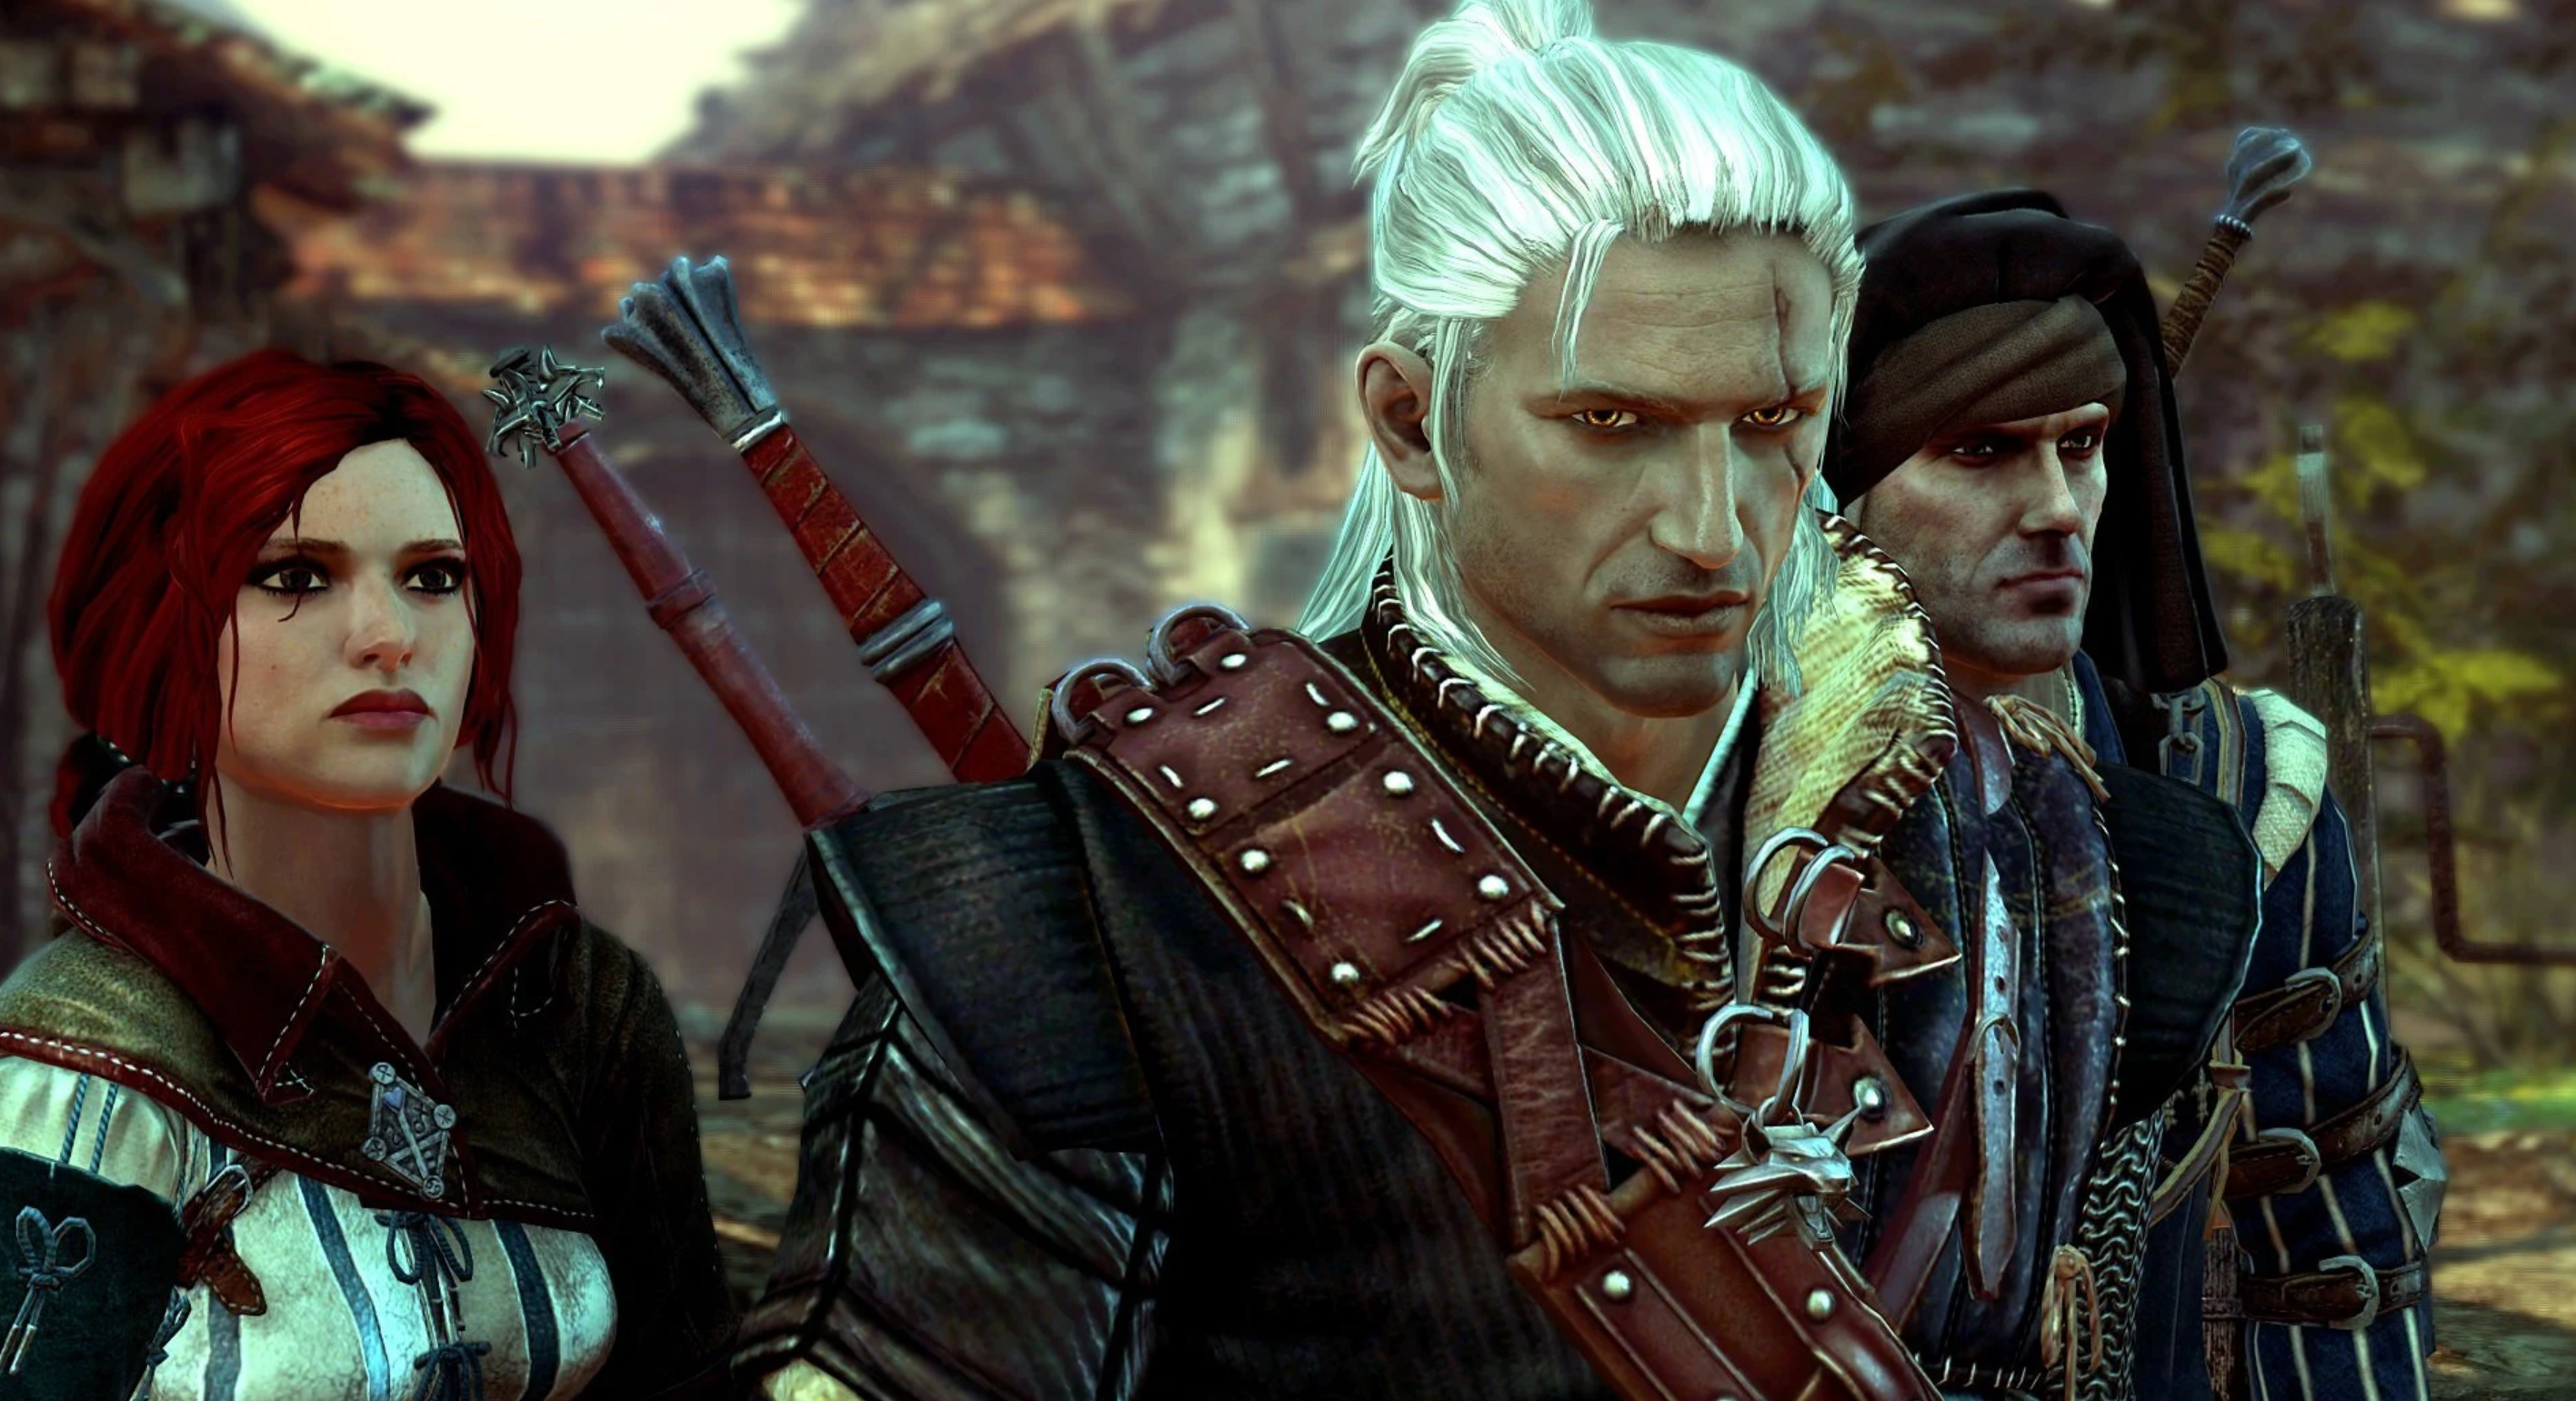 The Witcher 2 is five bucks on Xbox 360/Xbox One for another week